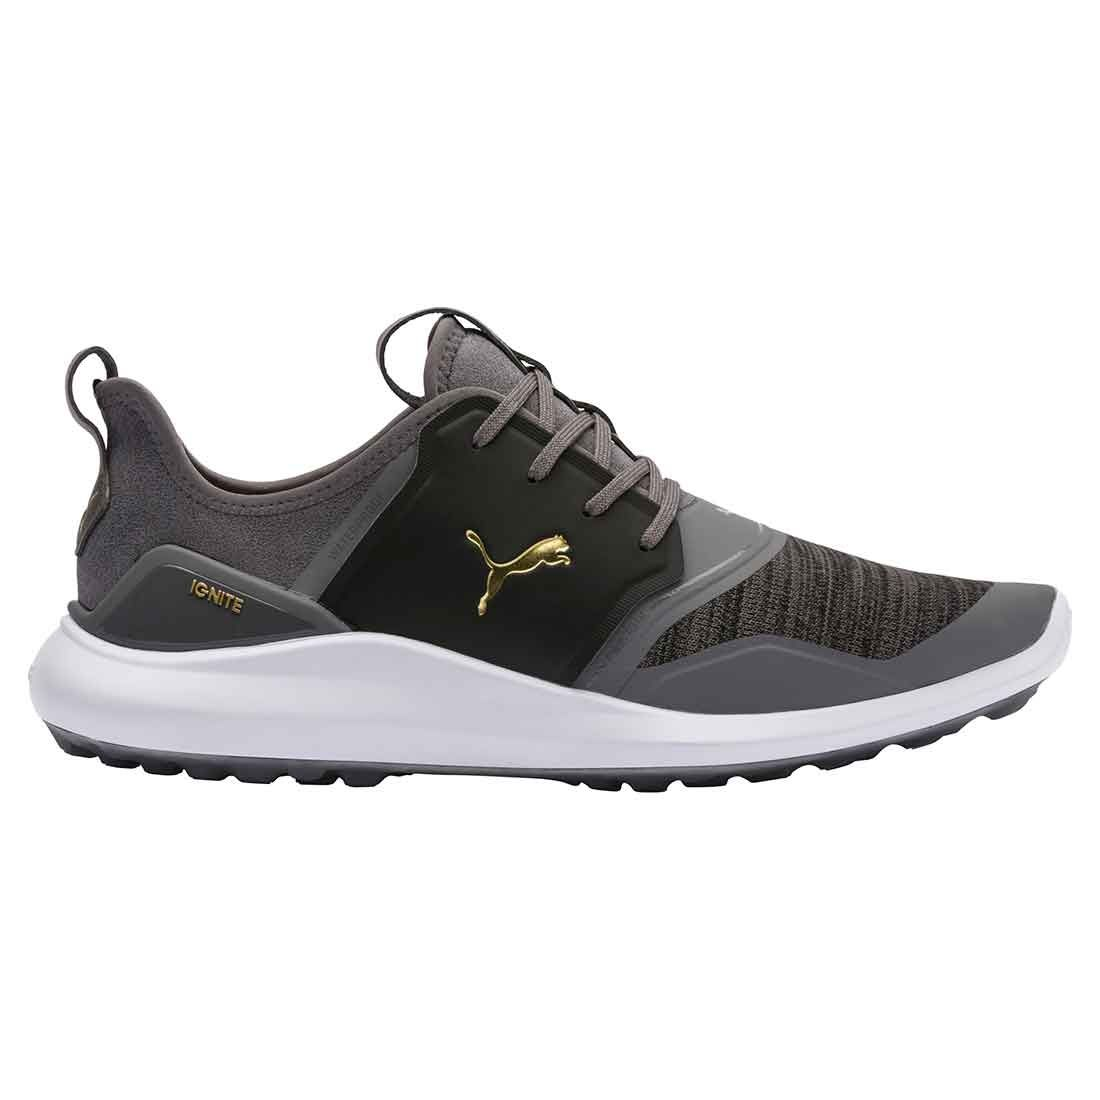 Buy Puma Ignite Nxt Lace Golf Shoes Quiet Shade Gold Golf Discount